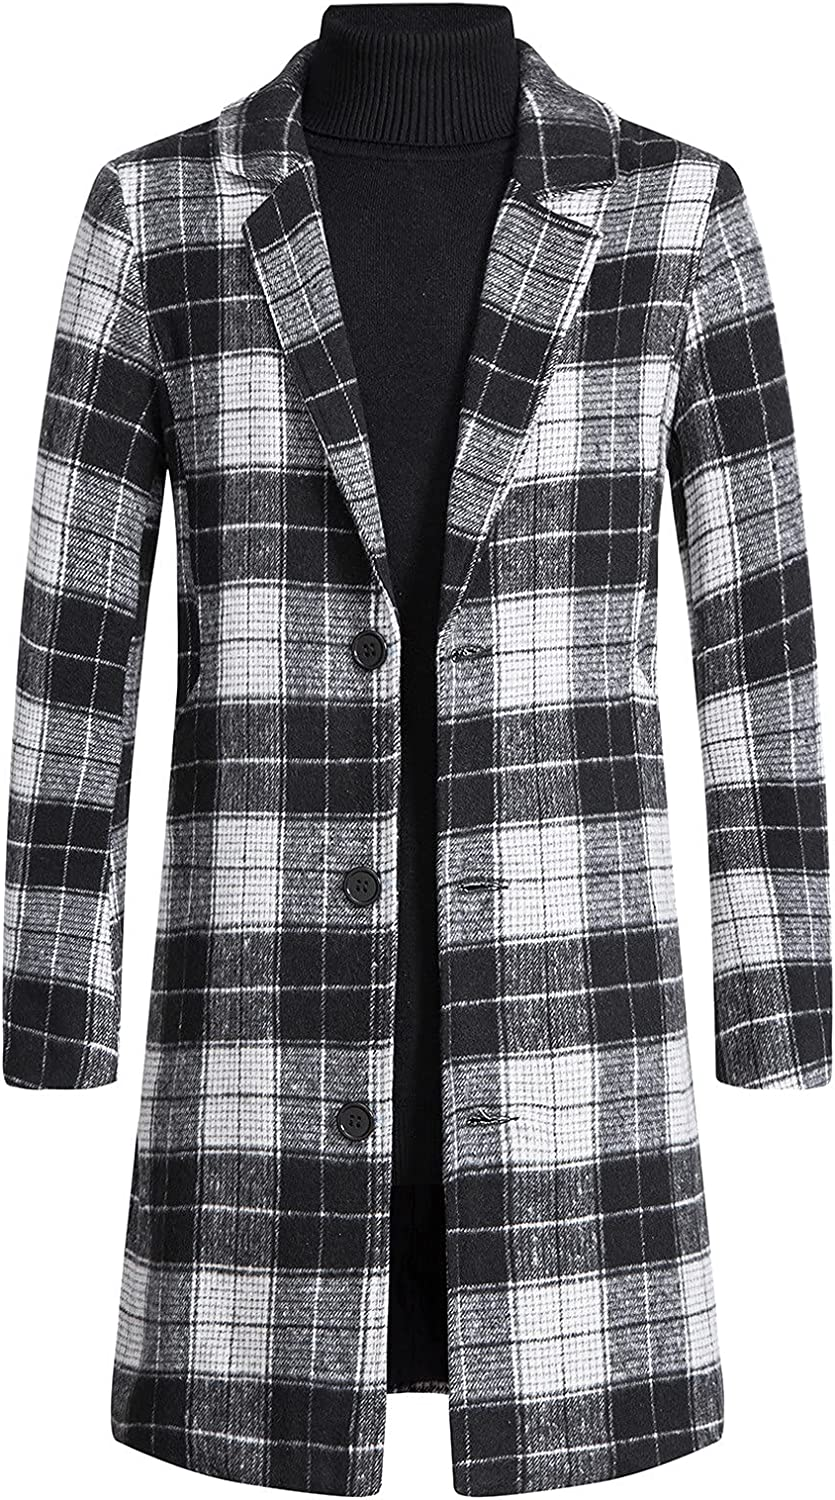 Men's Trench Coat Jacket Color Stitching Wool Slim Fit Top Coat Single Breasted Button Lapel Long Business Overcoat